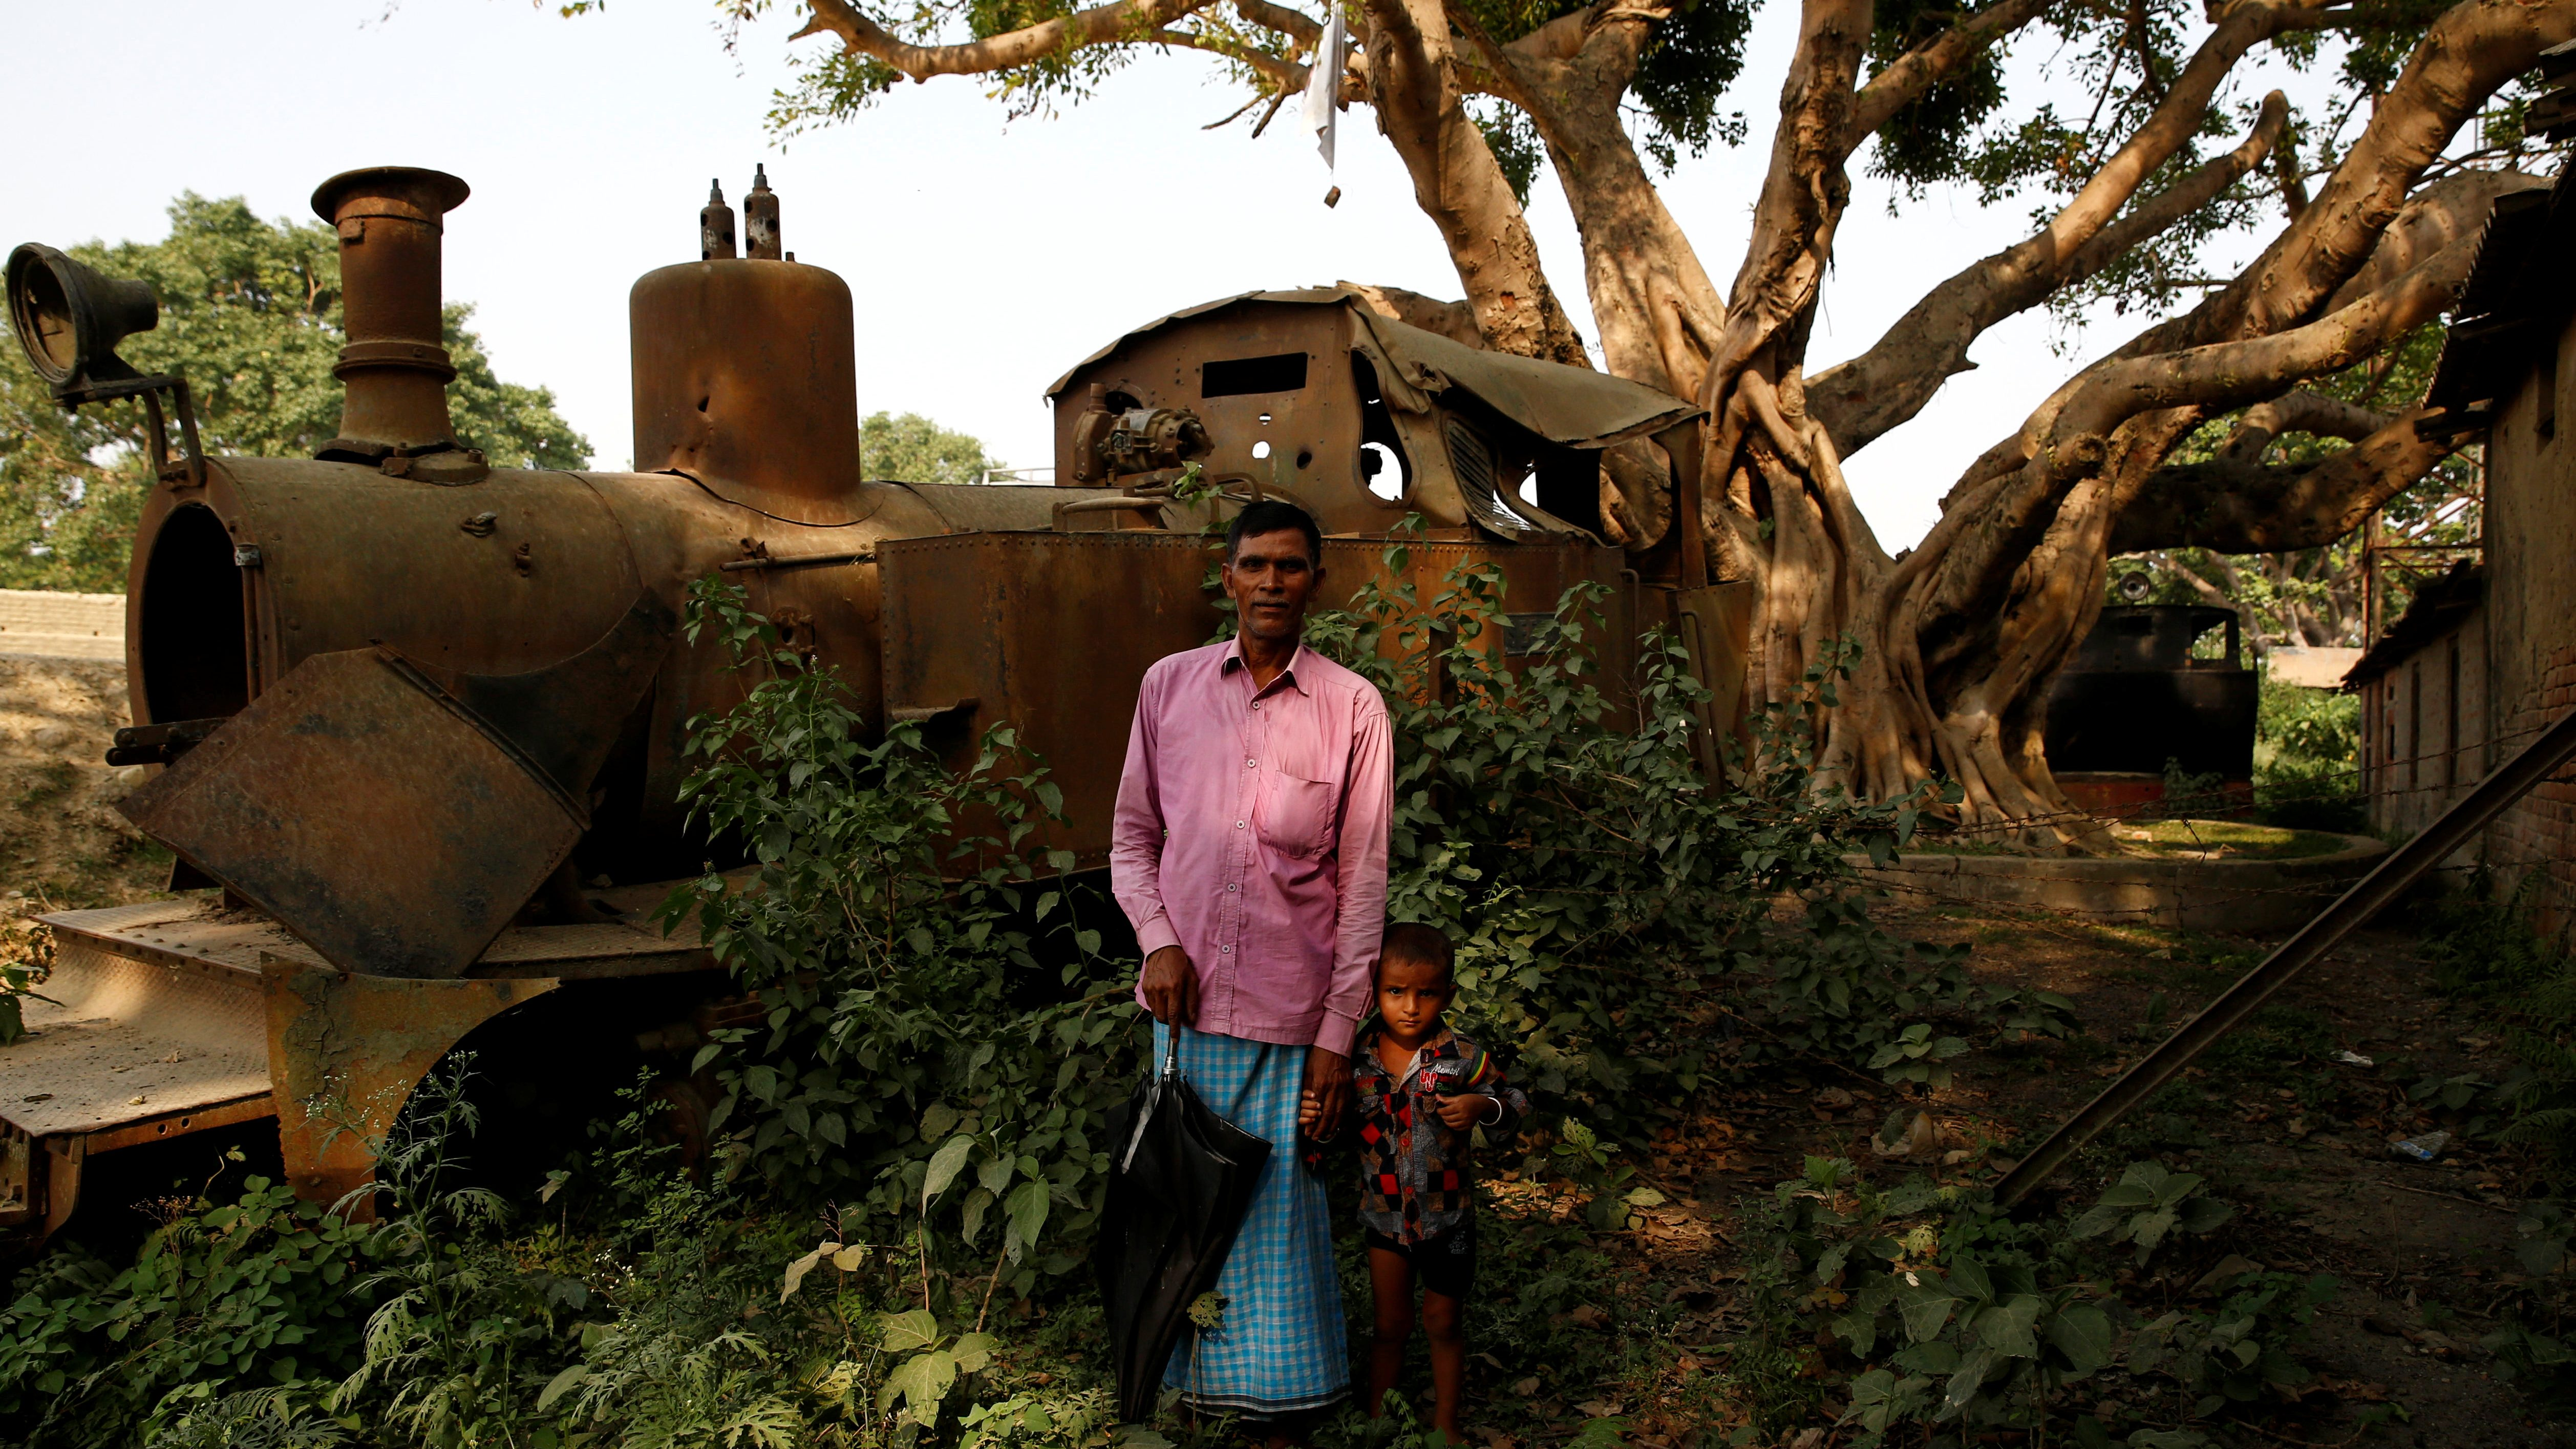 Train driver Rafid Kabadi, 49, with his grandson in front of an abandoned train he used to drive, in Janakpur, Nepal.